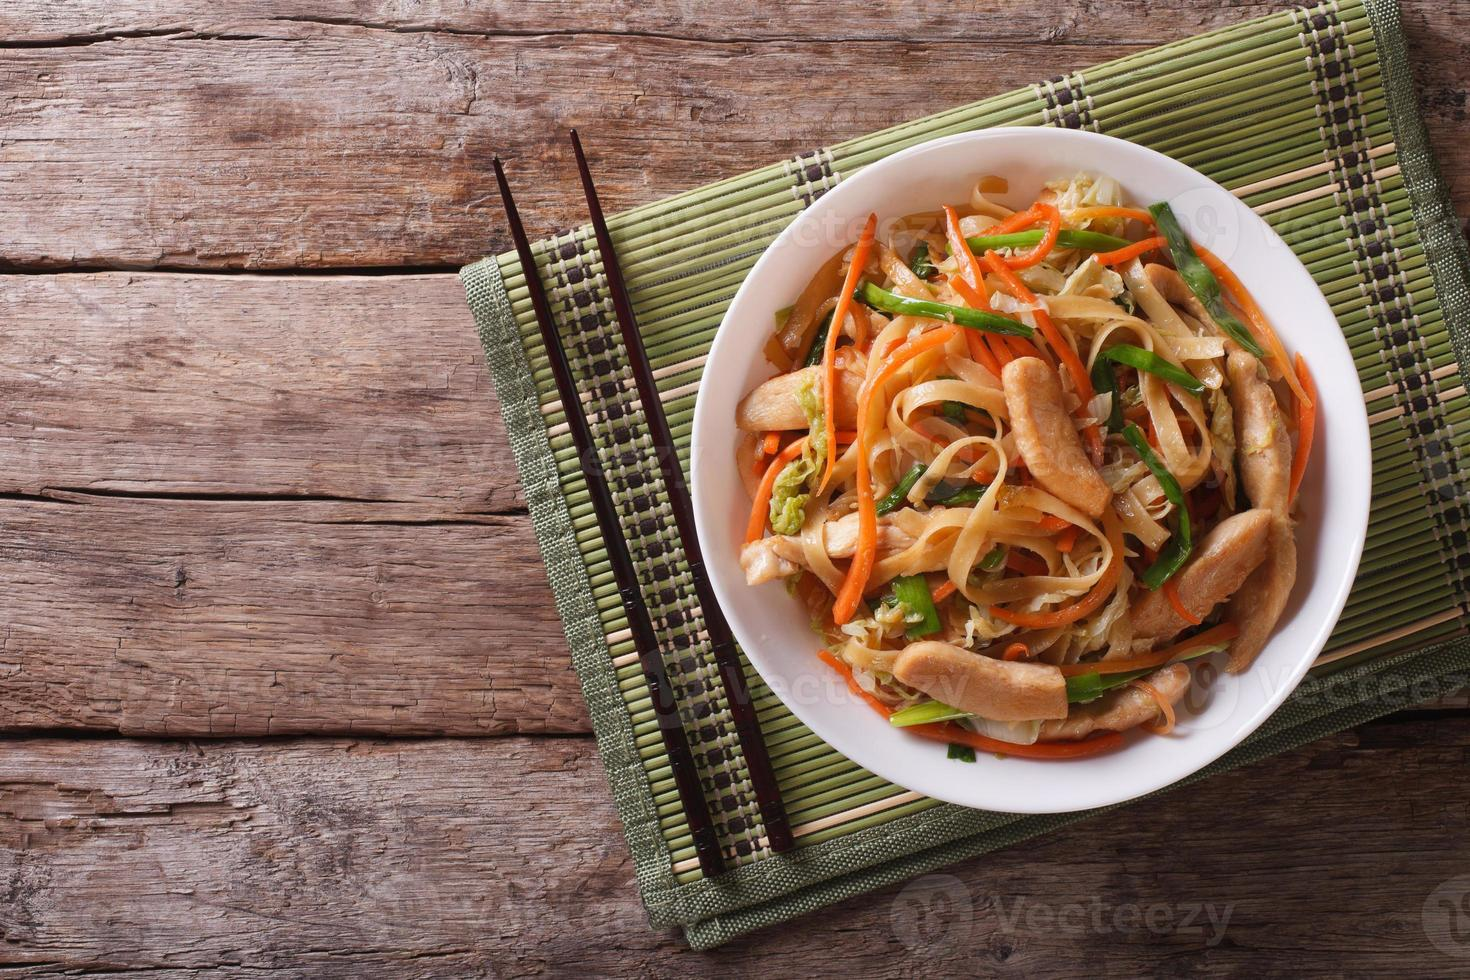 Chow Mein: fried noodles with chicken, horizontal top view photo